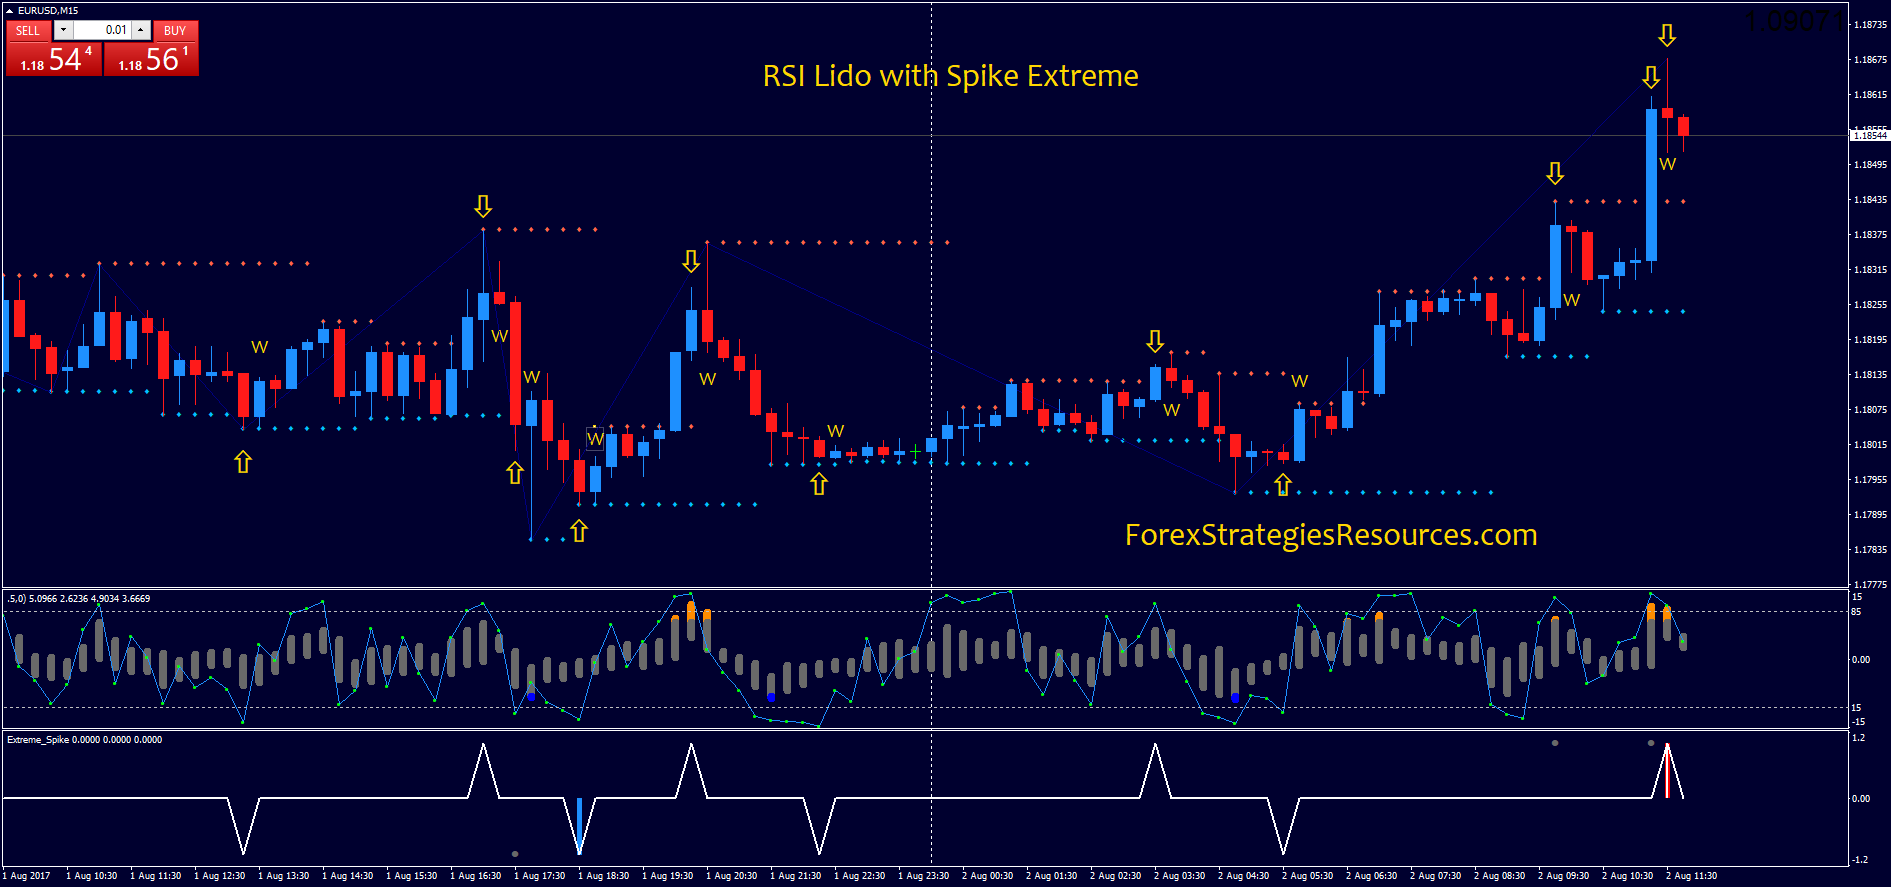 rsi lido with spike extreme - forex strategies